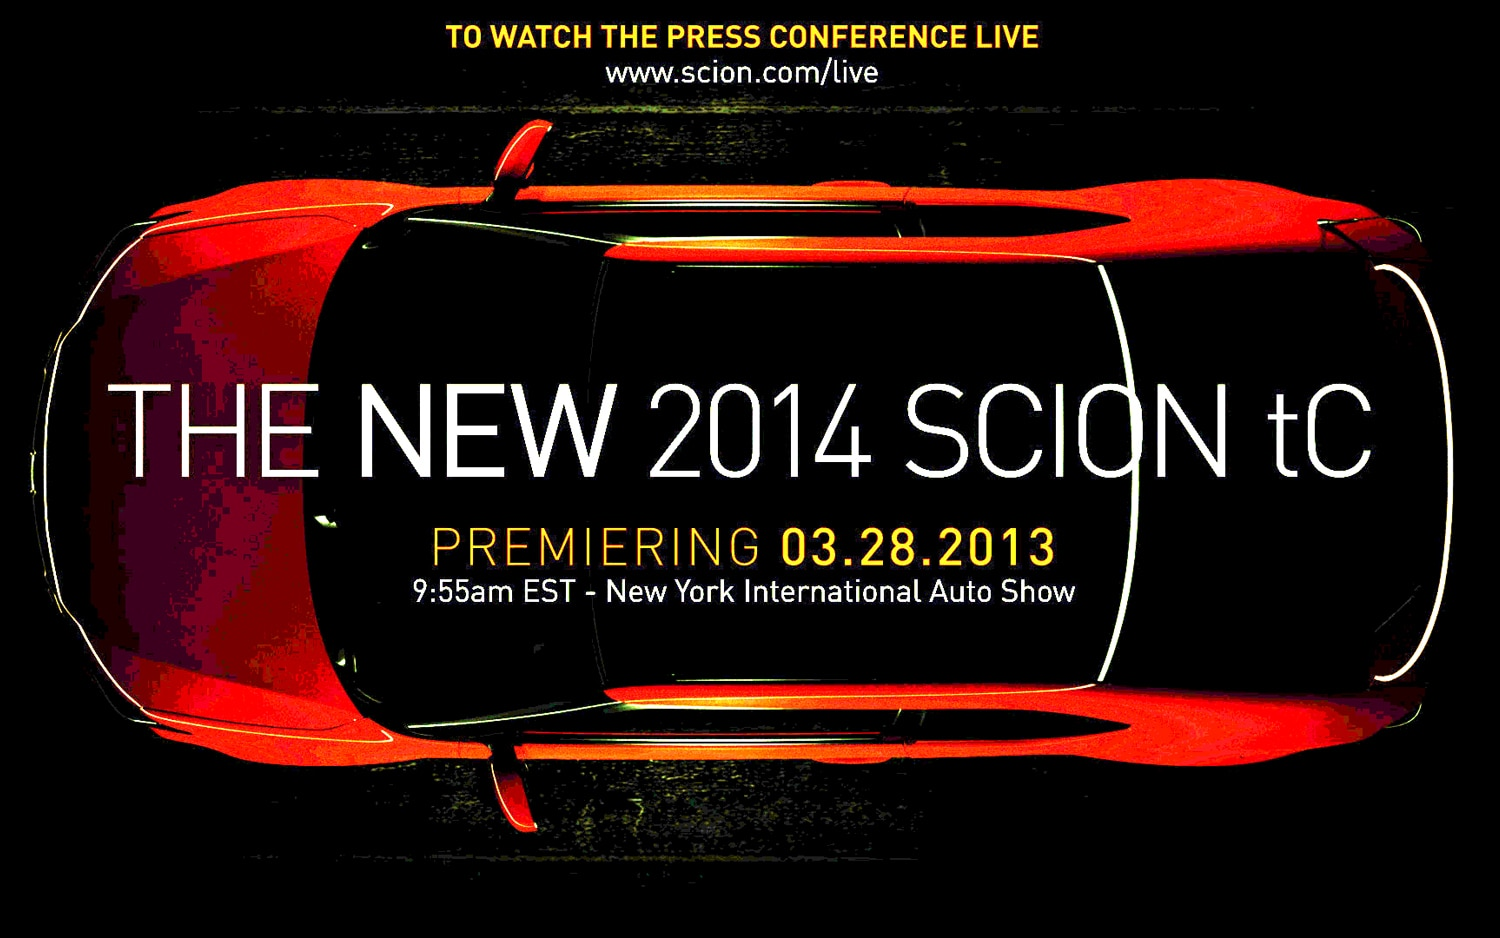 2014 Scion TC Teaser Lightened1